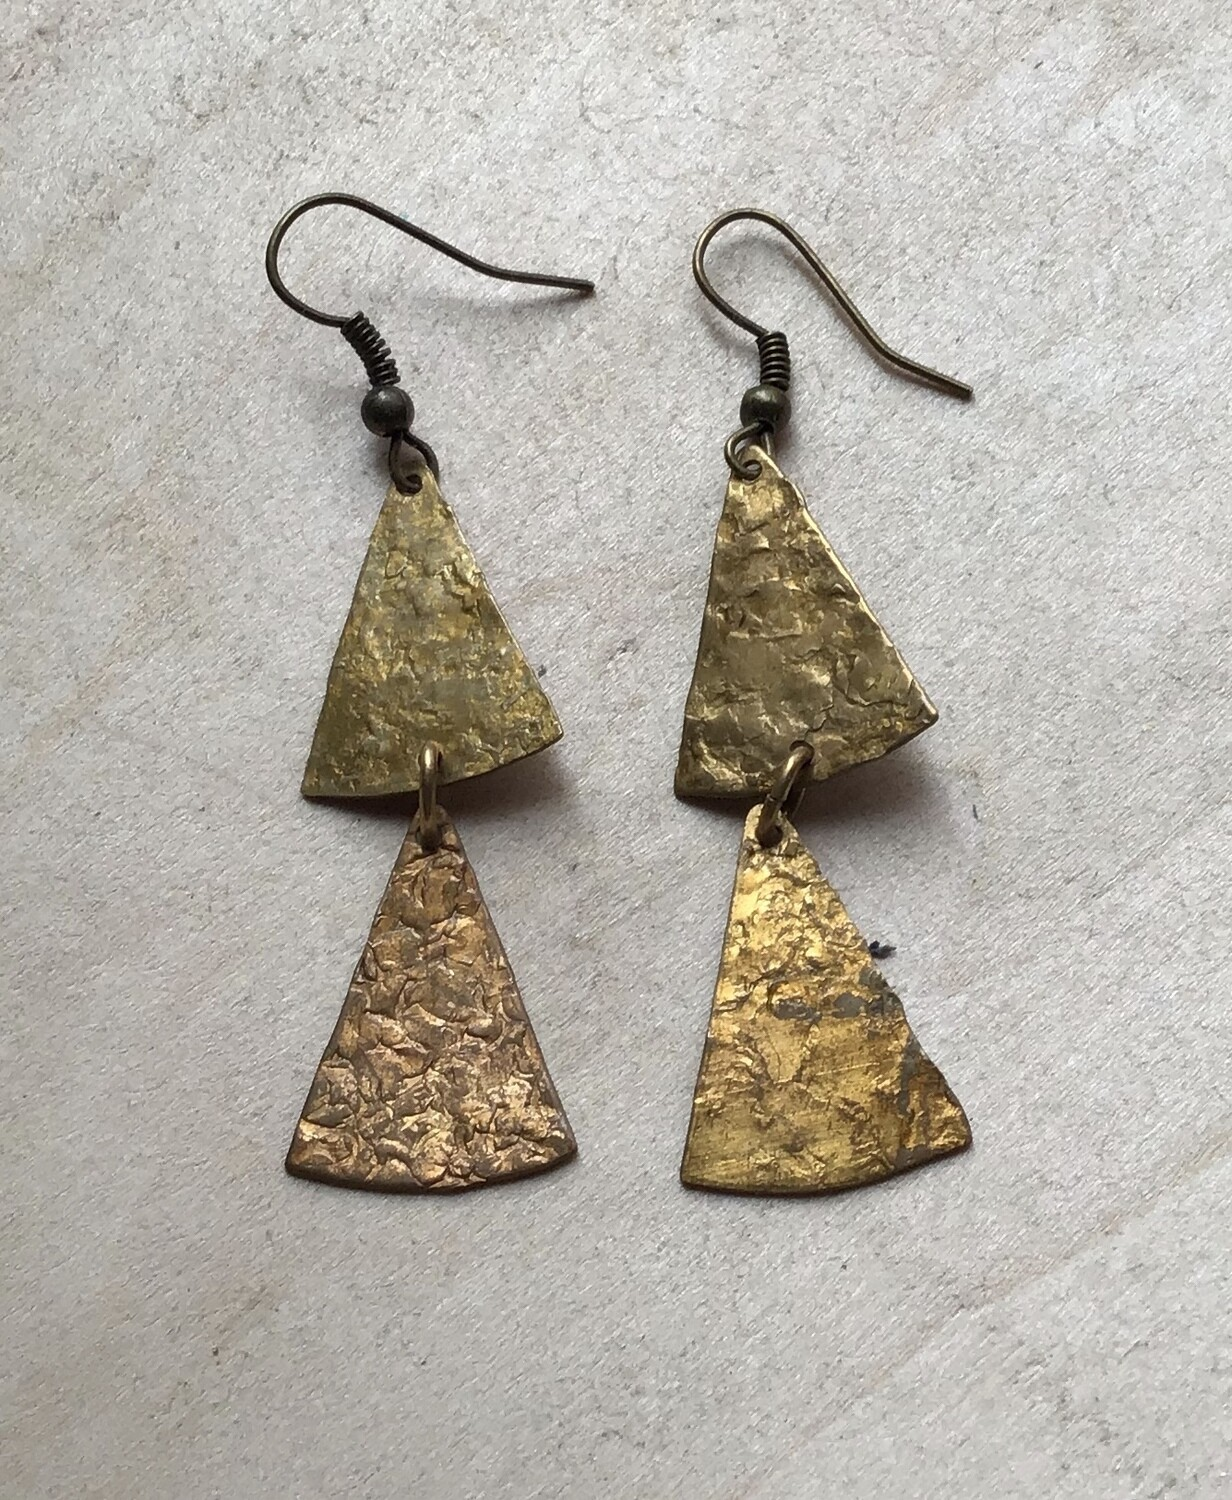 Earrings: Hammered Brass 2""